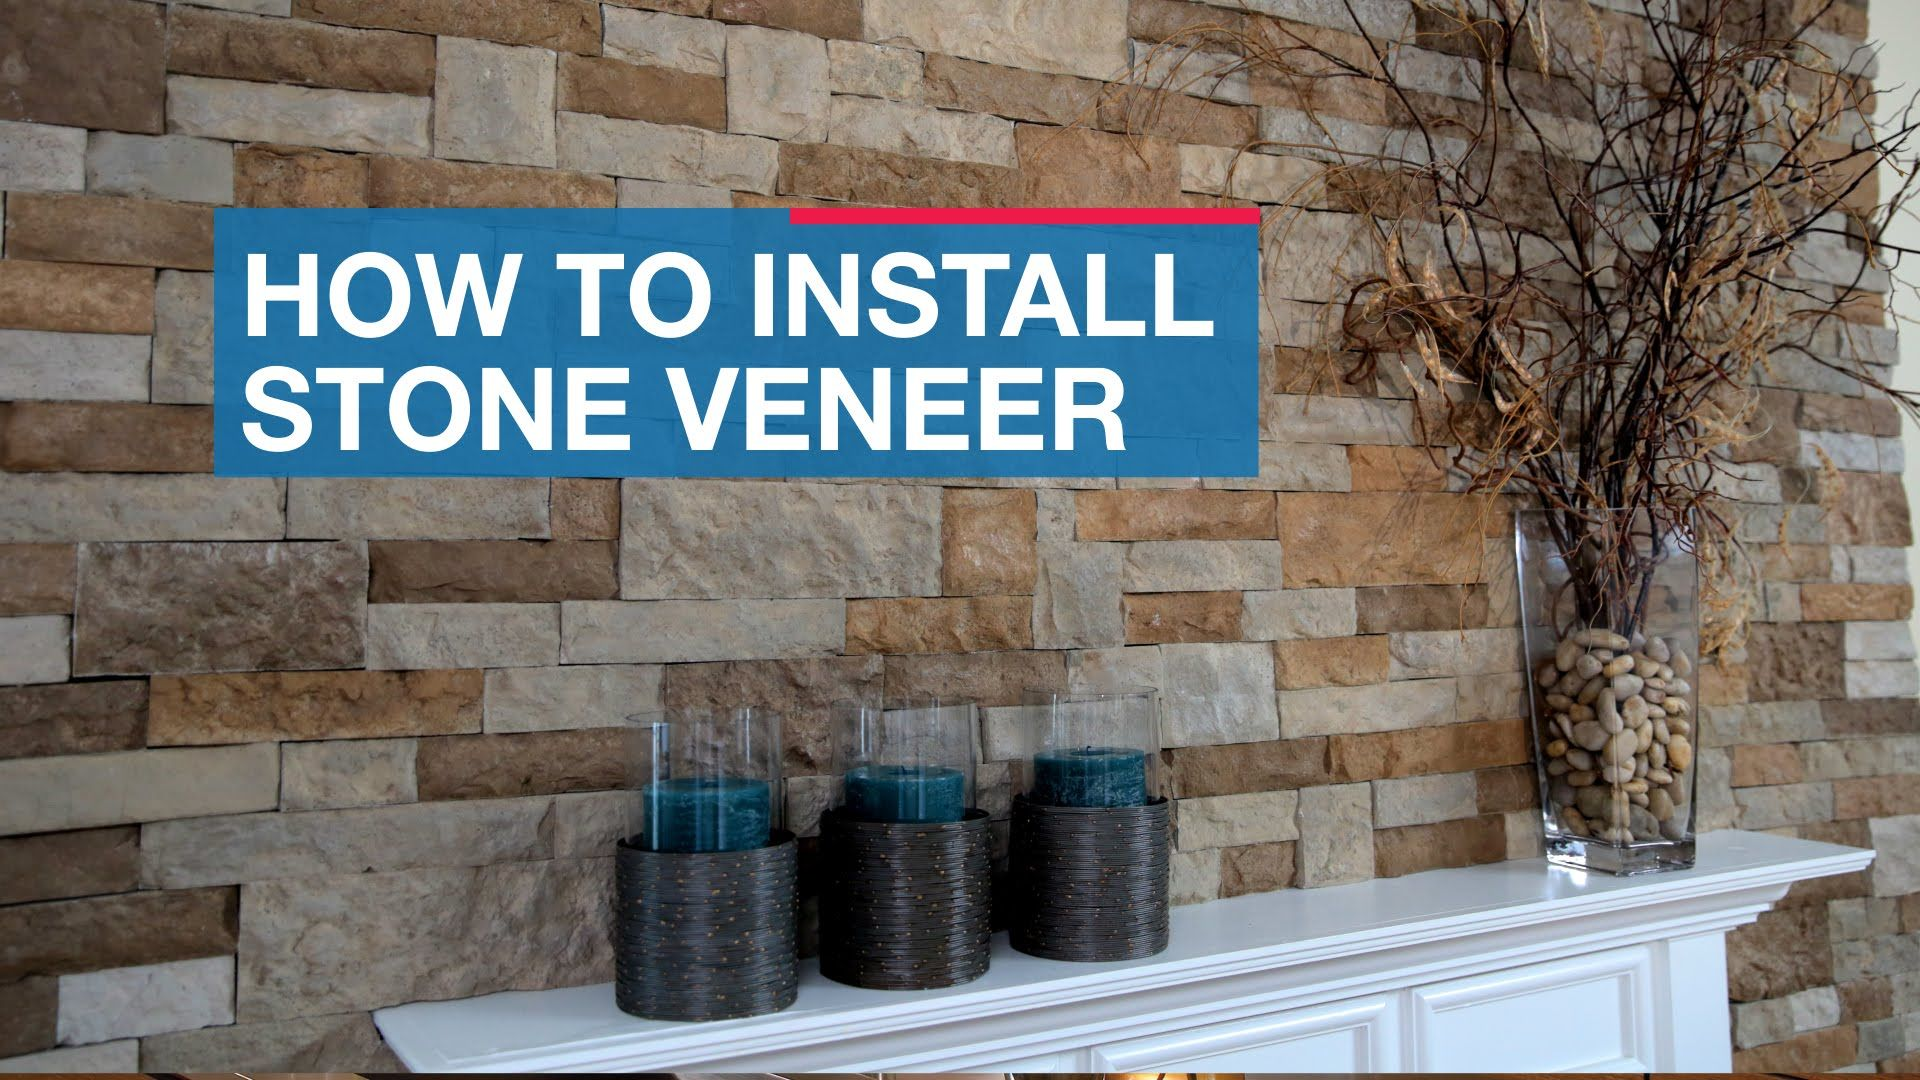 Installing Natural Stone Veneer On Your Fireplace Is Easy With